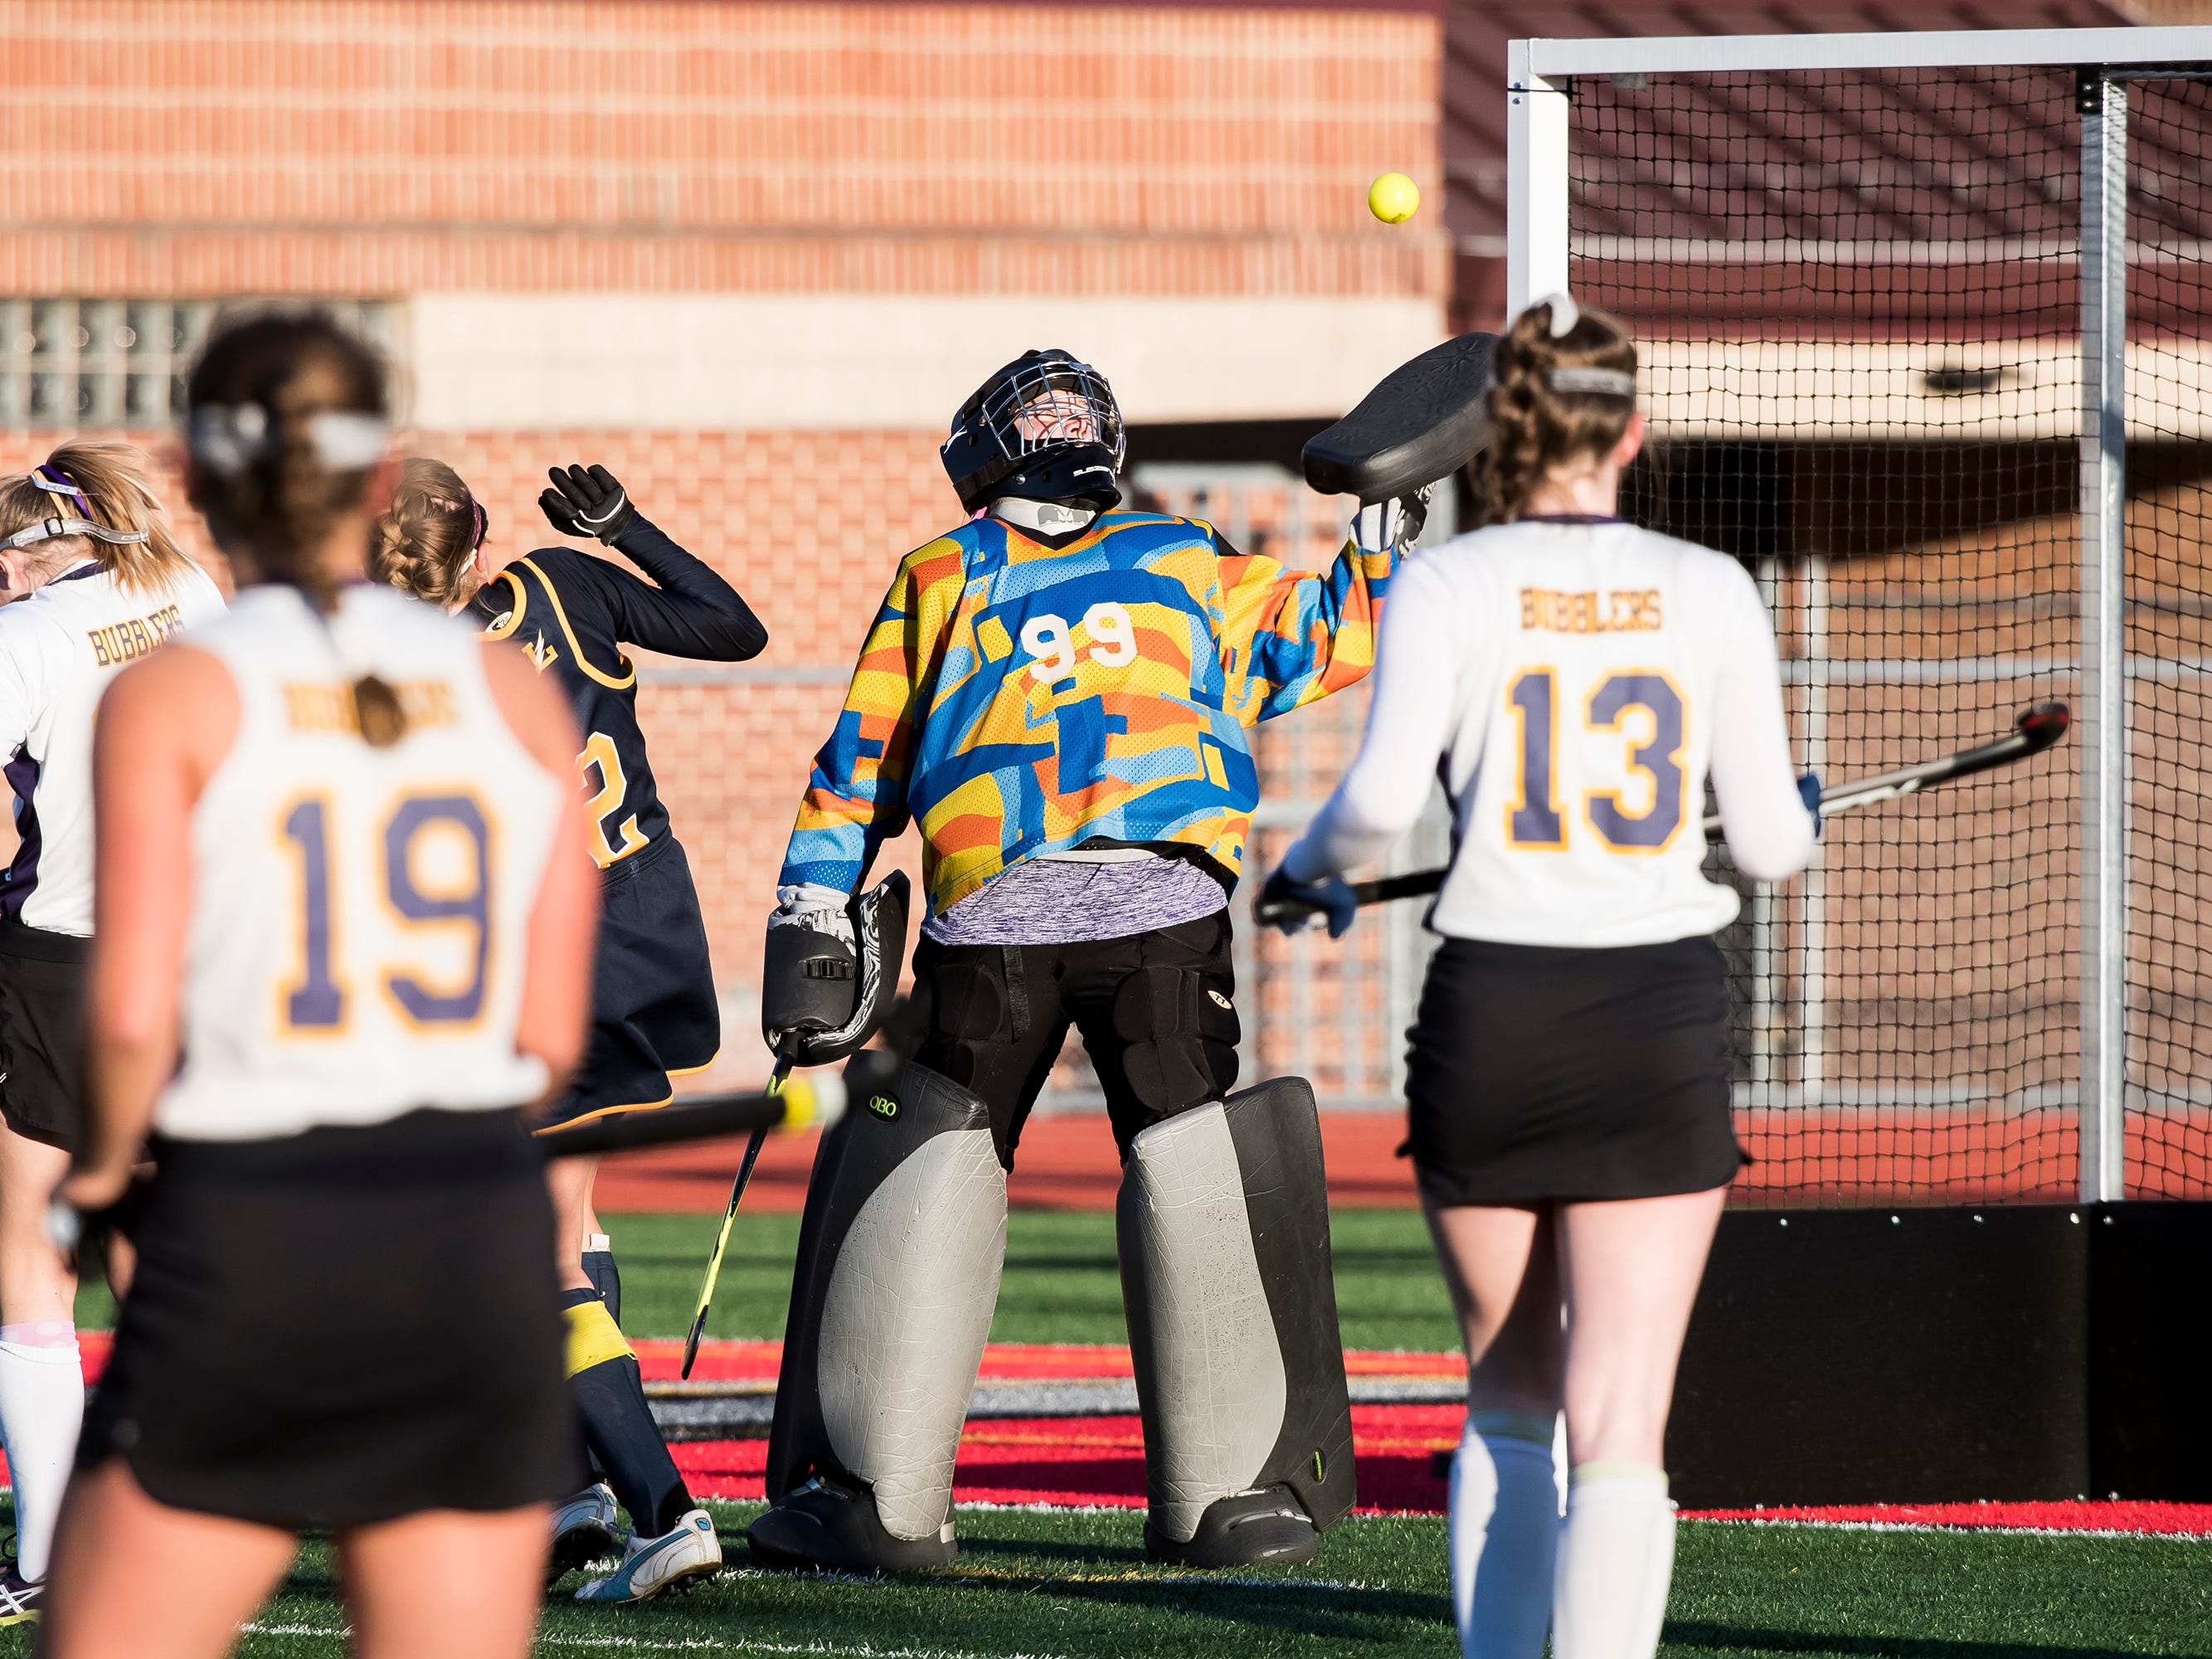 Boiling Springs' goal keeper Carly Galbraith bats away a ball during a PIAA District III first round game against Littlestown at Bermudian Springs High School on Wednesday, October 24, 2018. The Bolts fell 2-0.